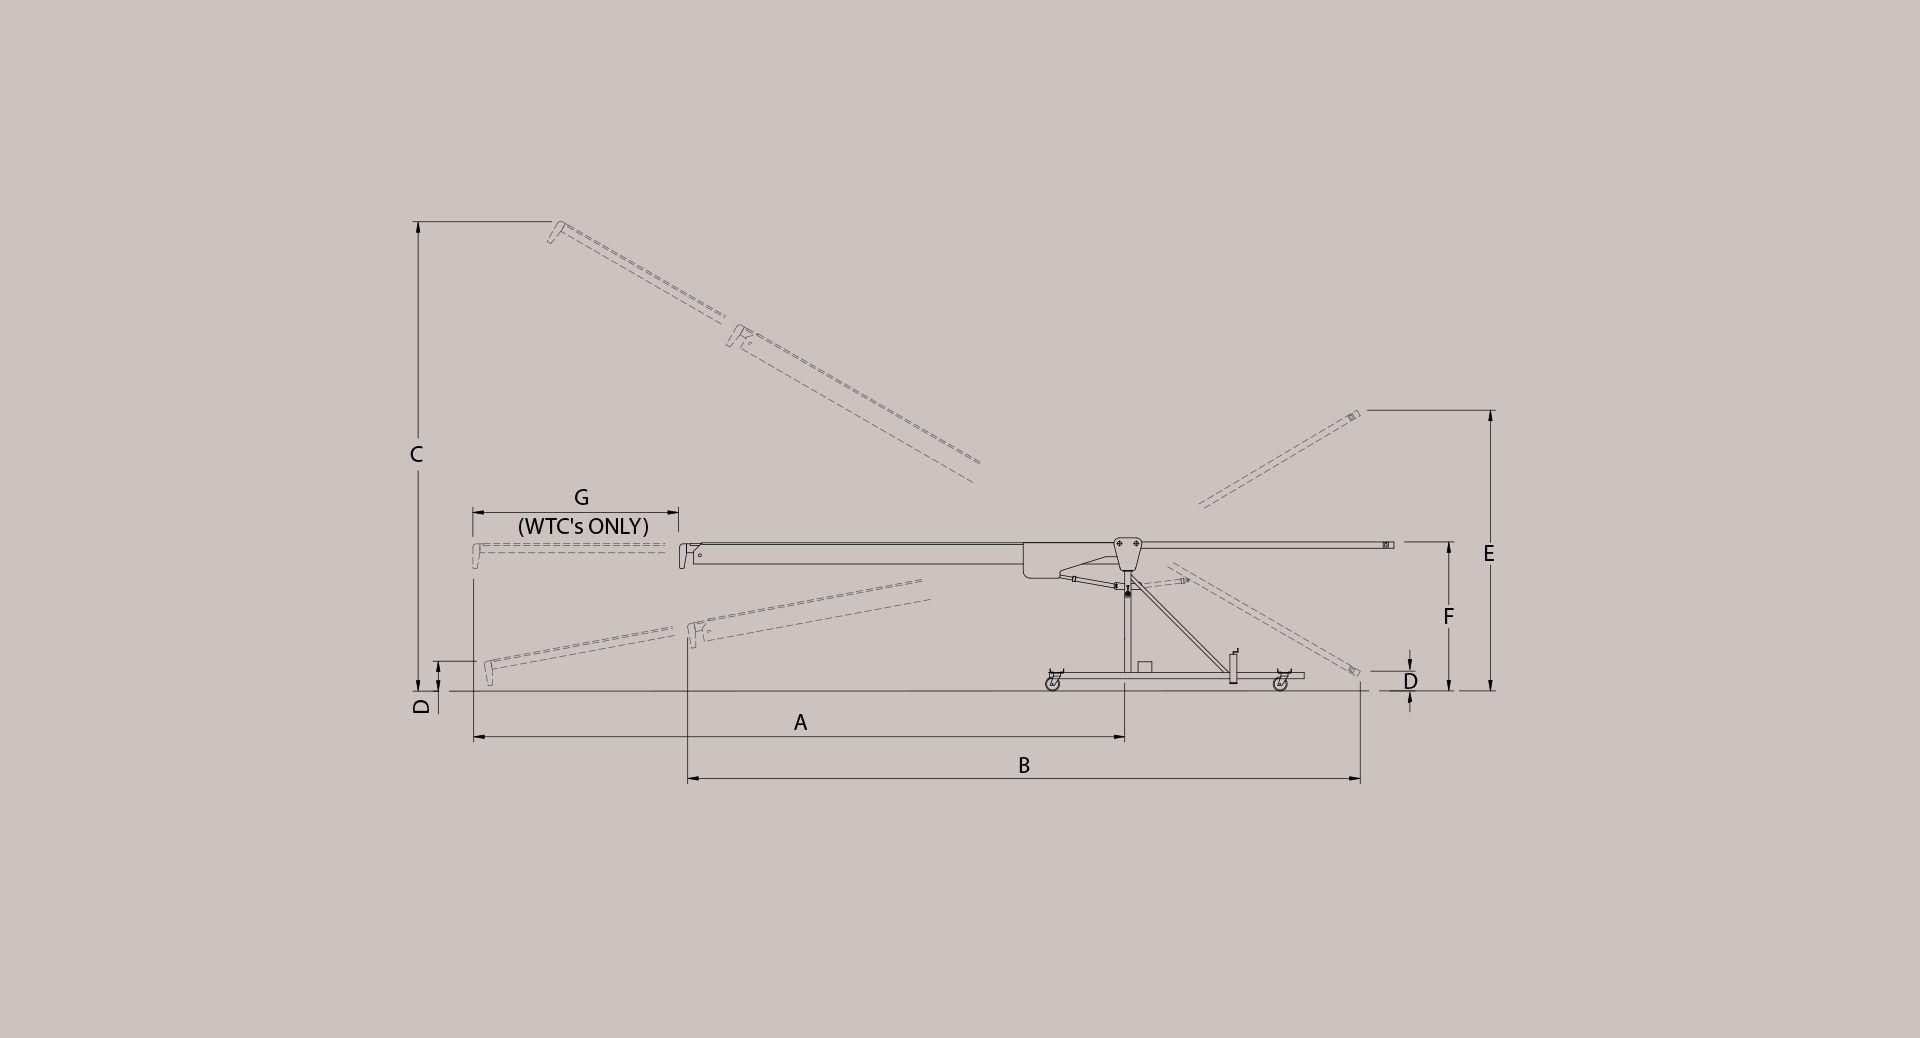 w-type conveyor technical drawing